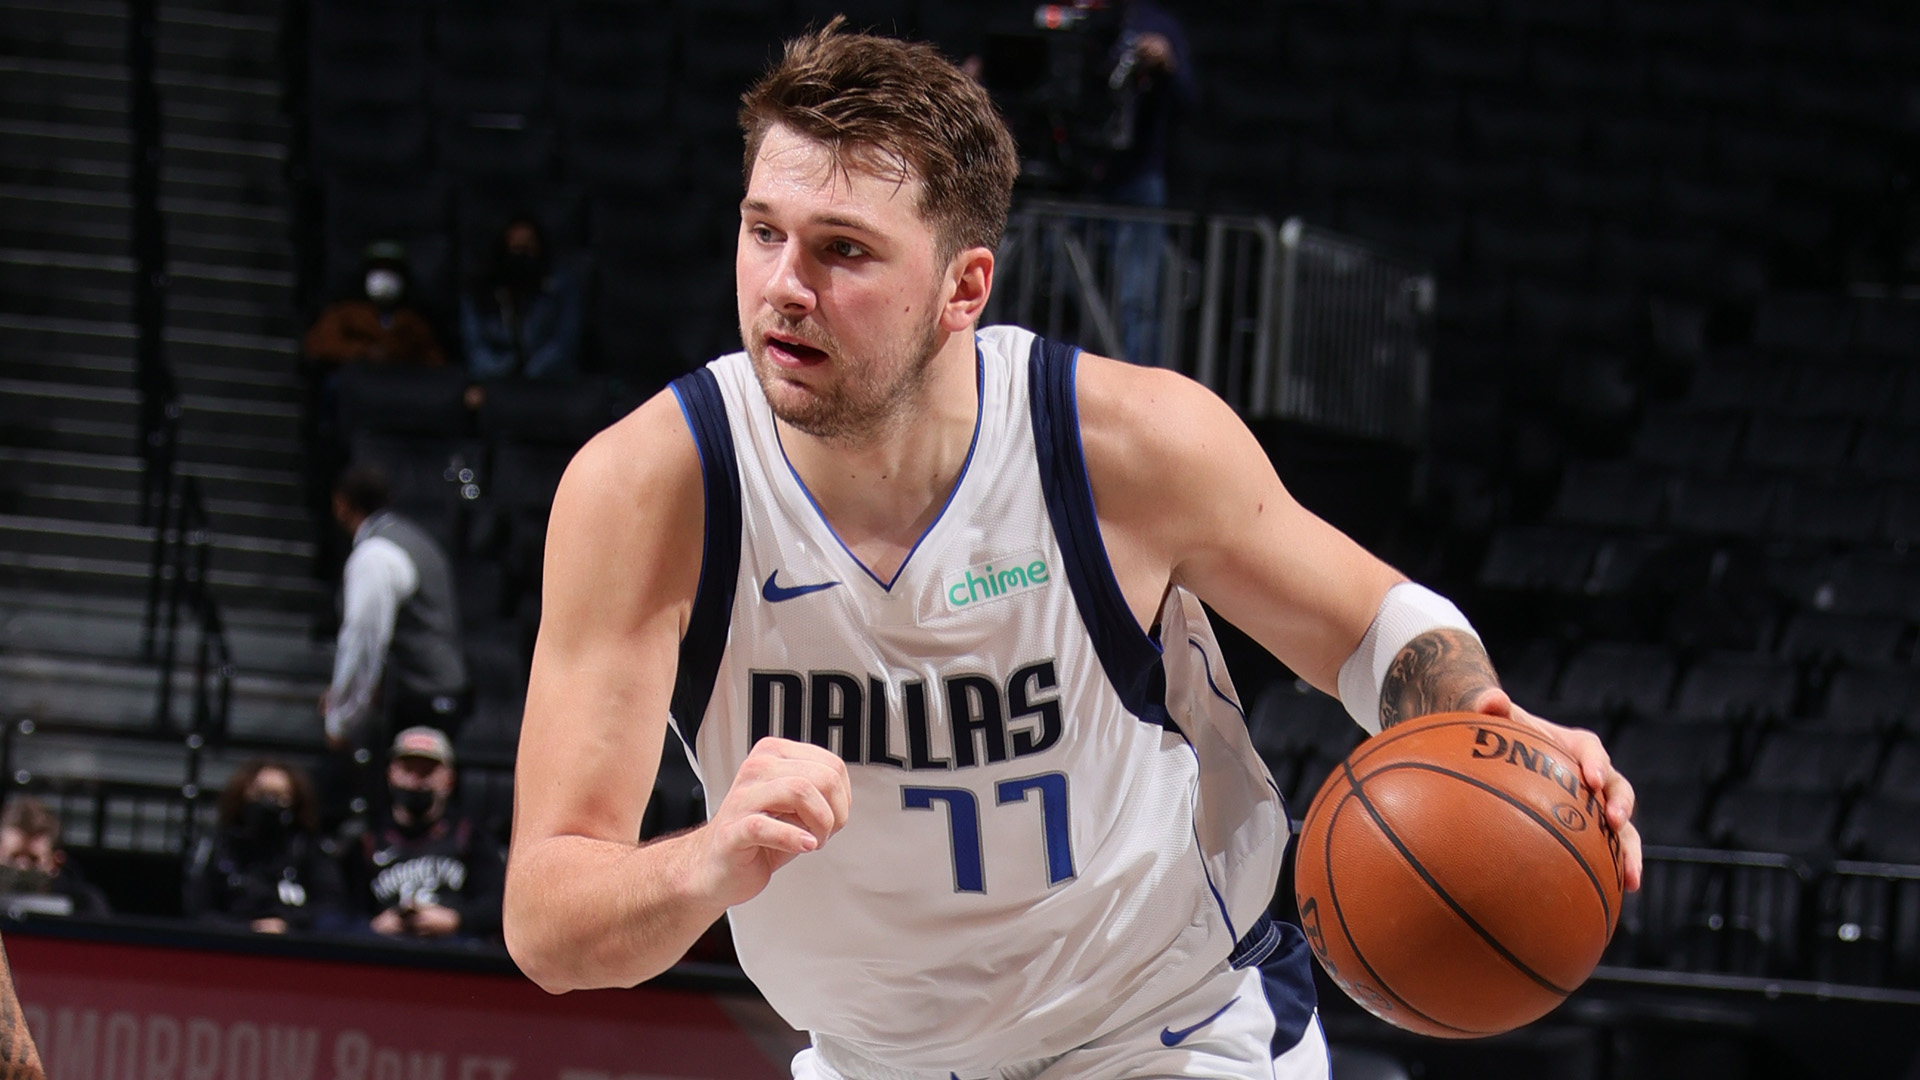 Mavs star Luka Doncic ruled out vs. Thunder with back issue